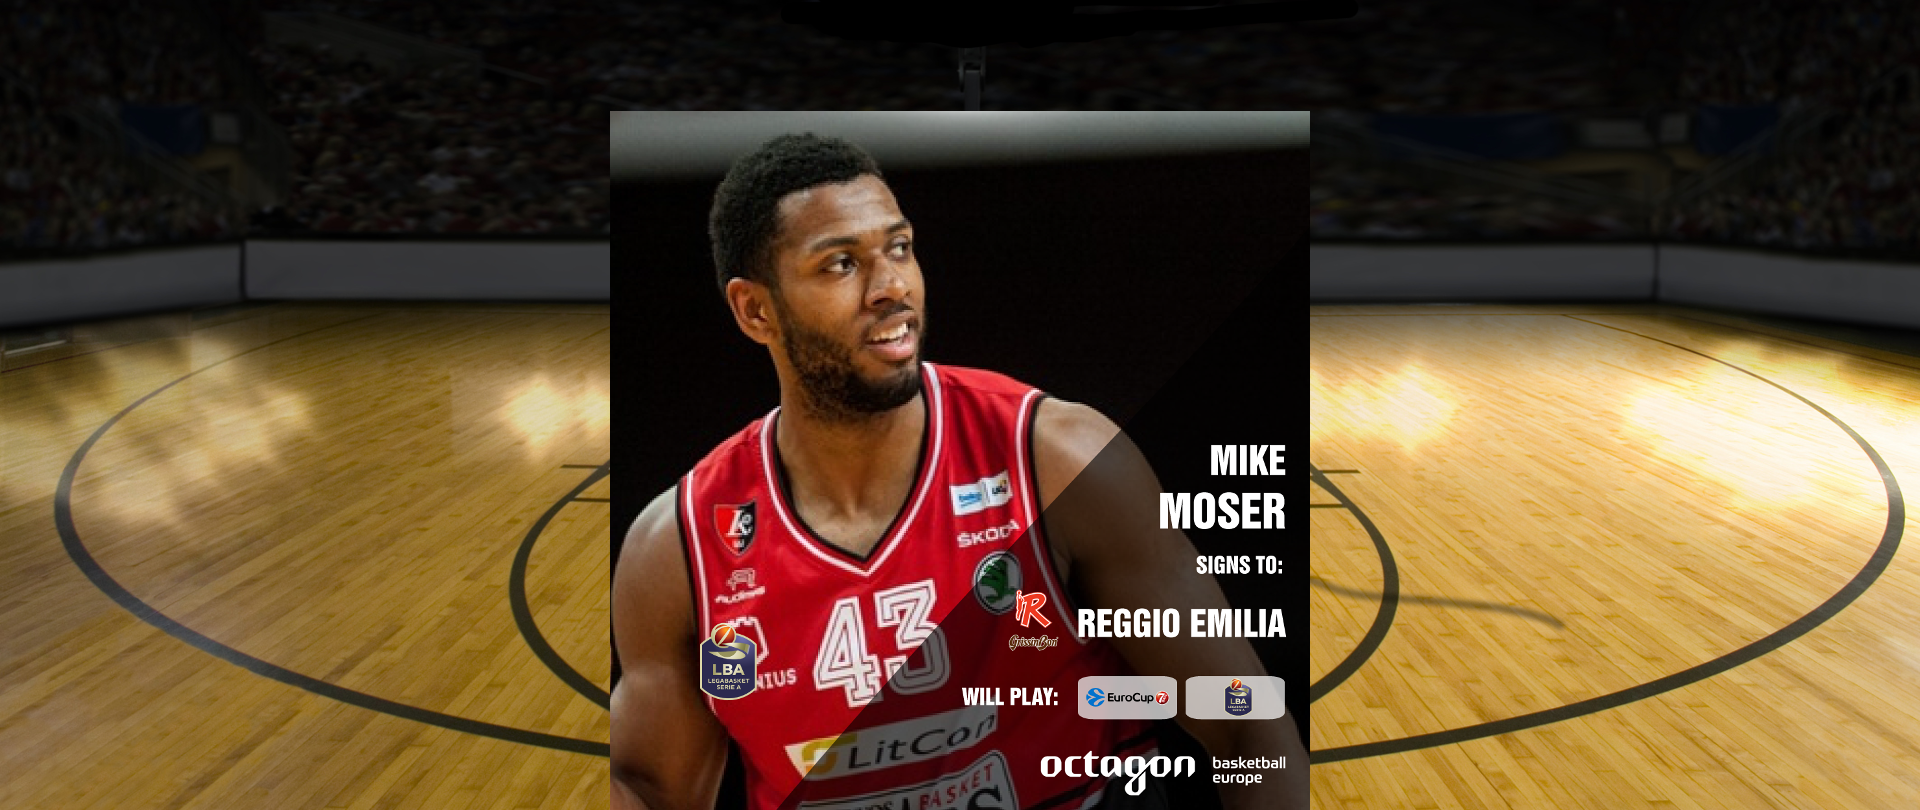 Mike Moser returns to Eurocup with Reggio Emilia